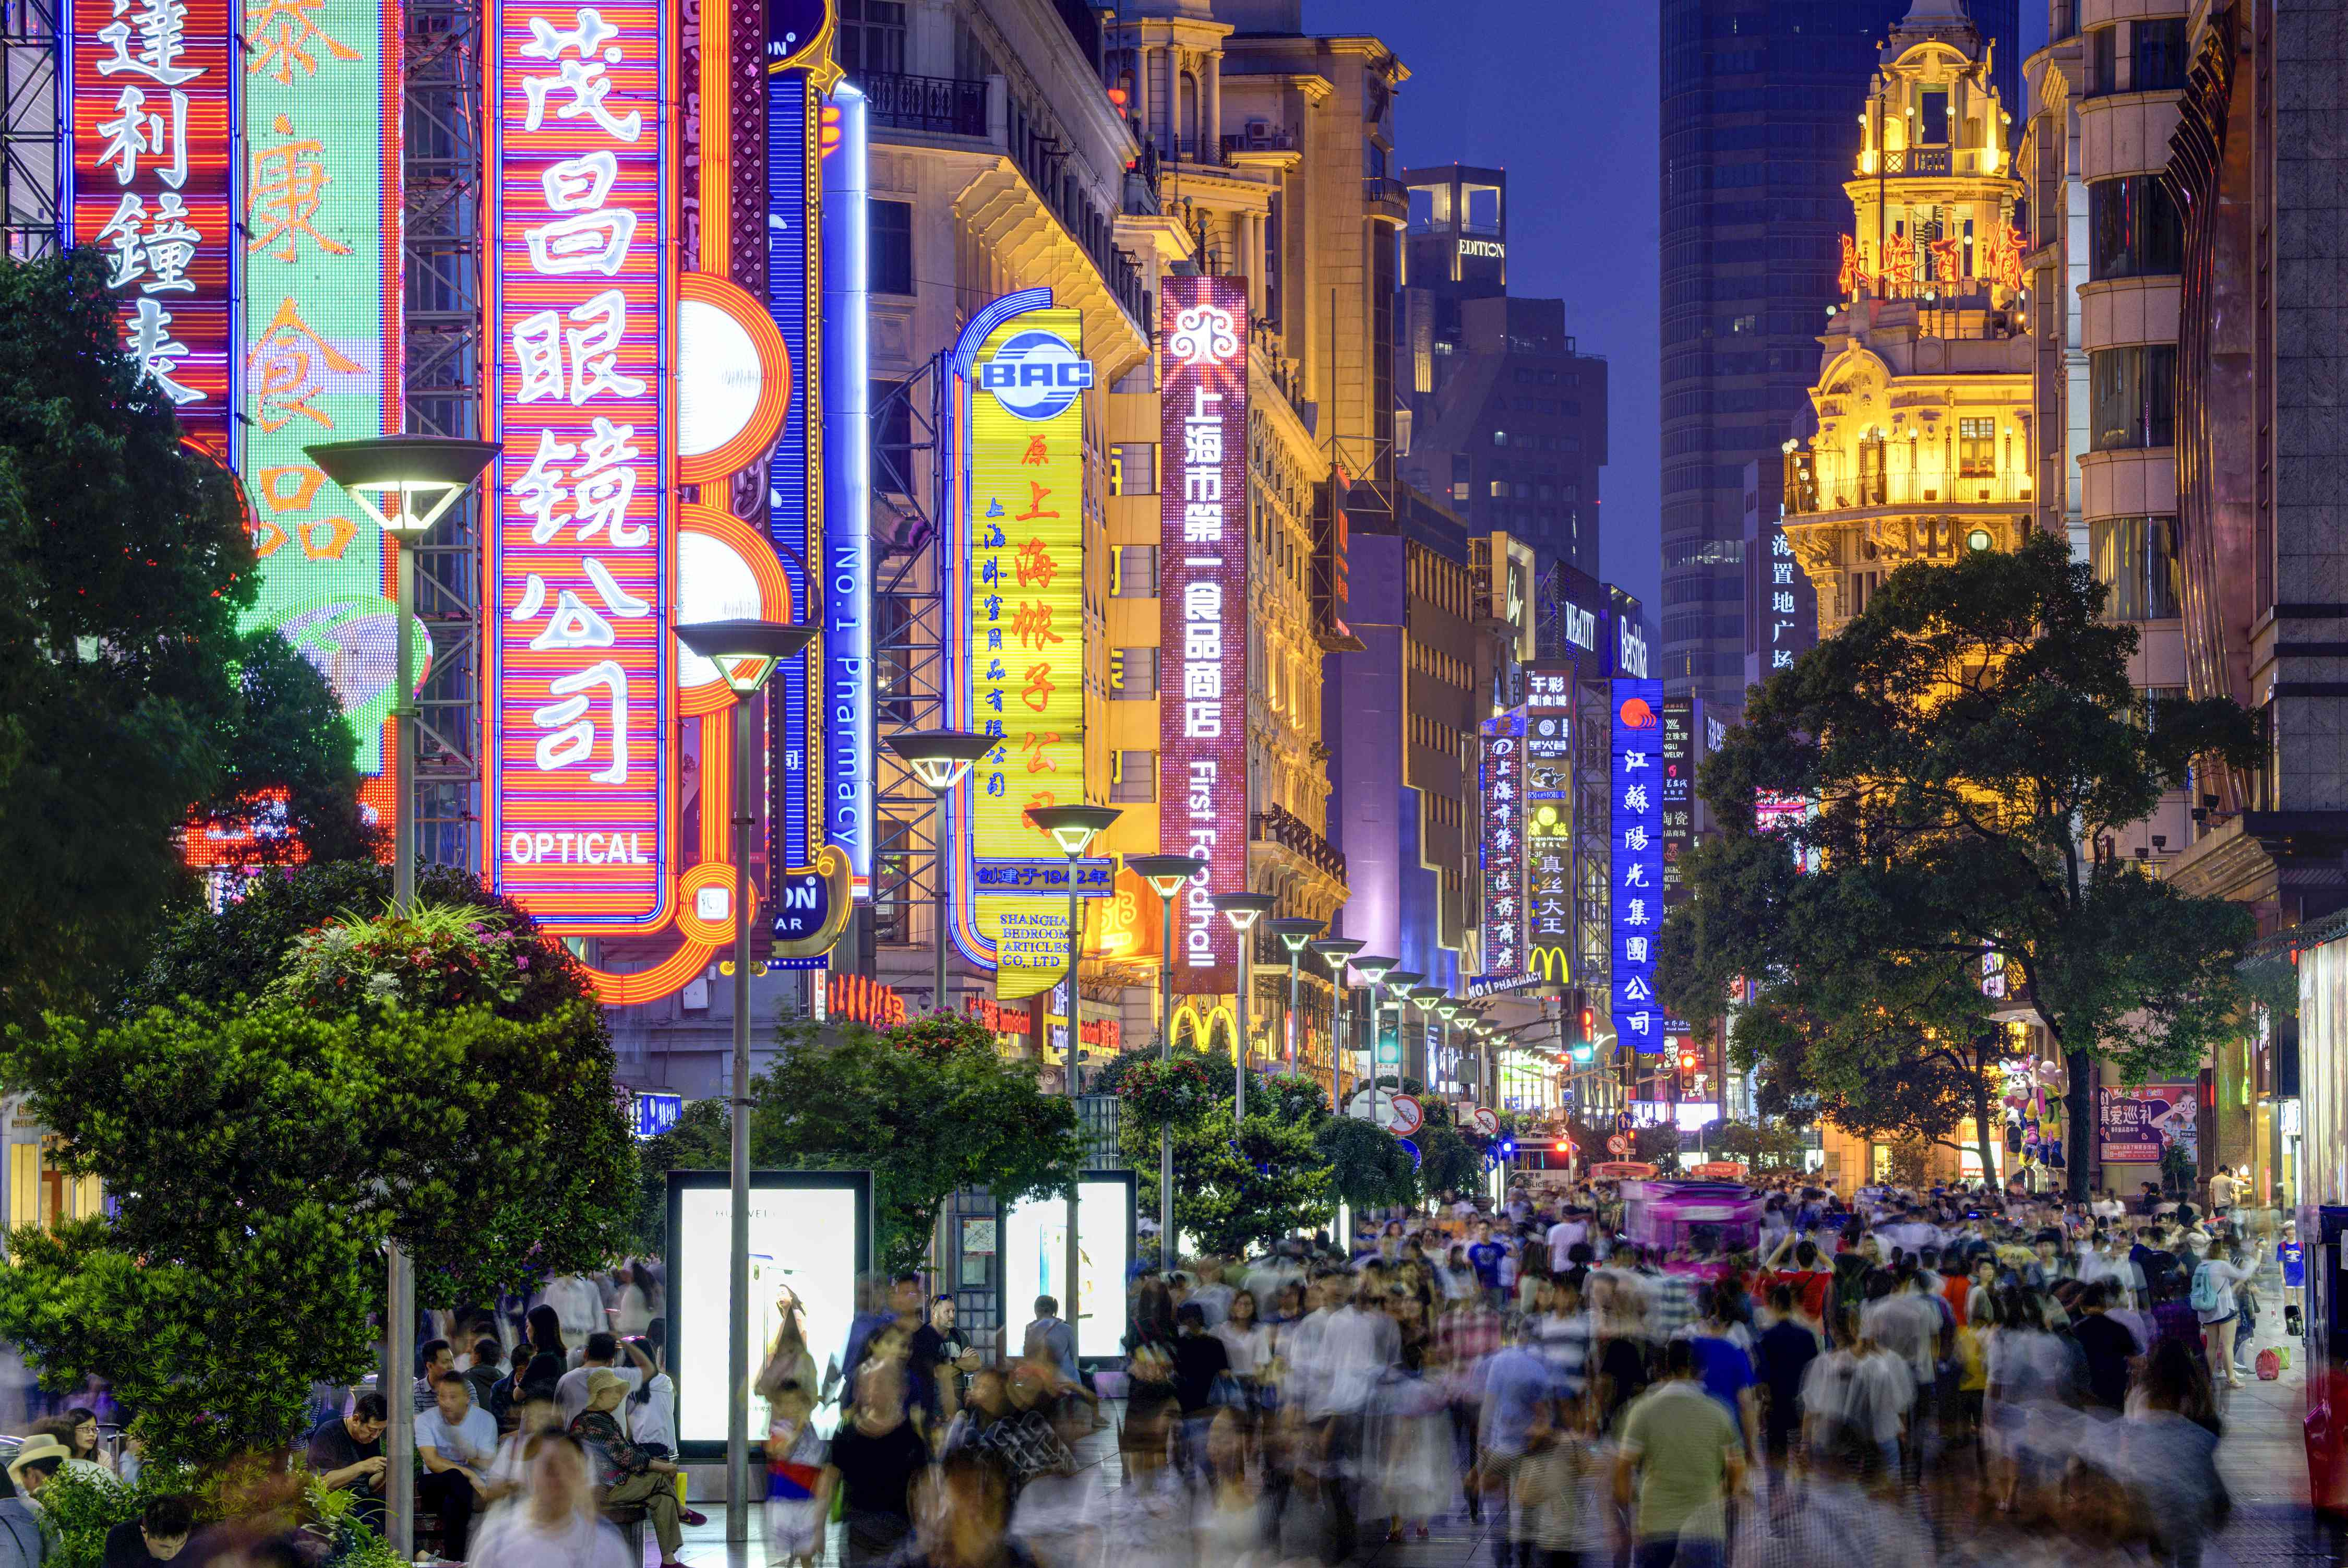 Busy street in Shanghai at night